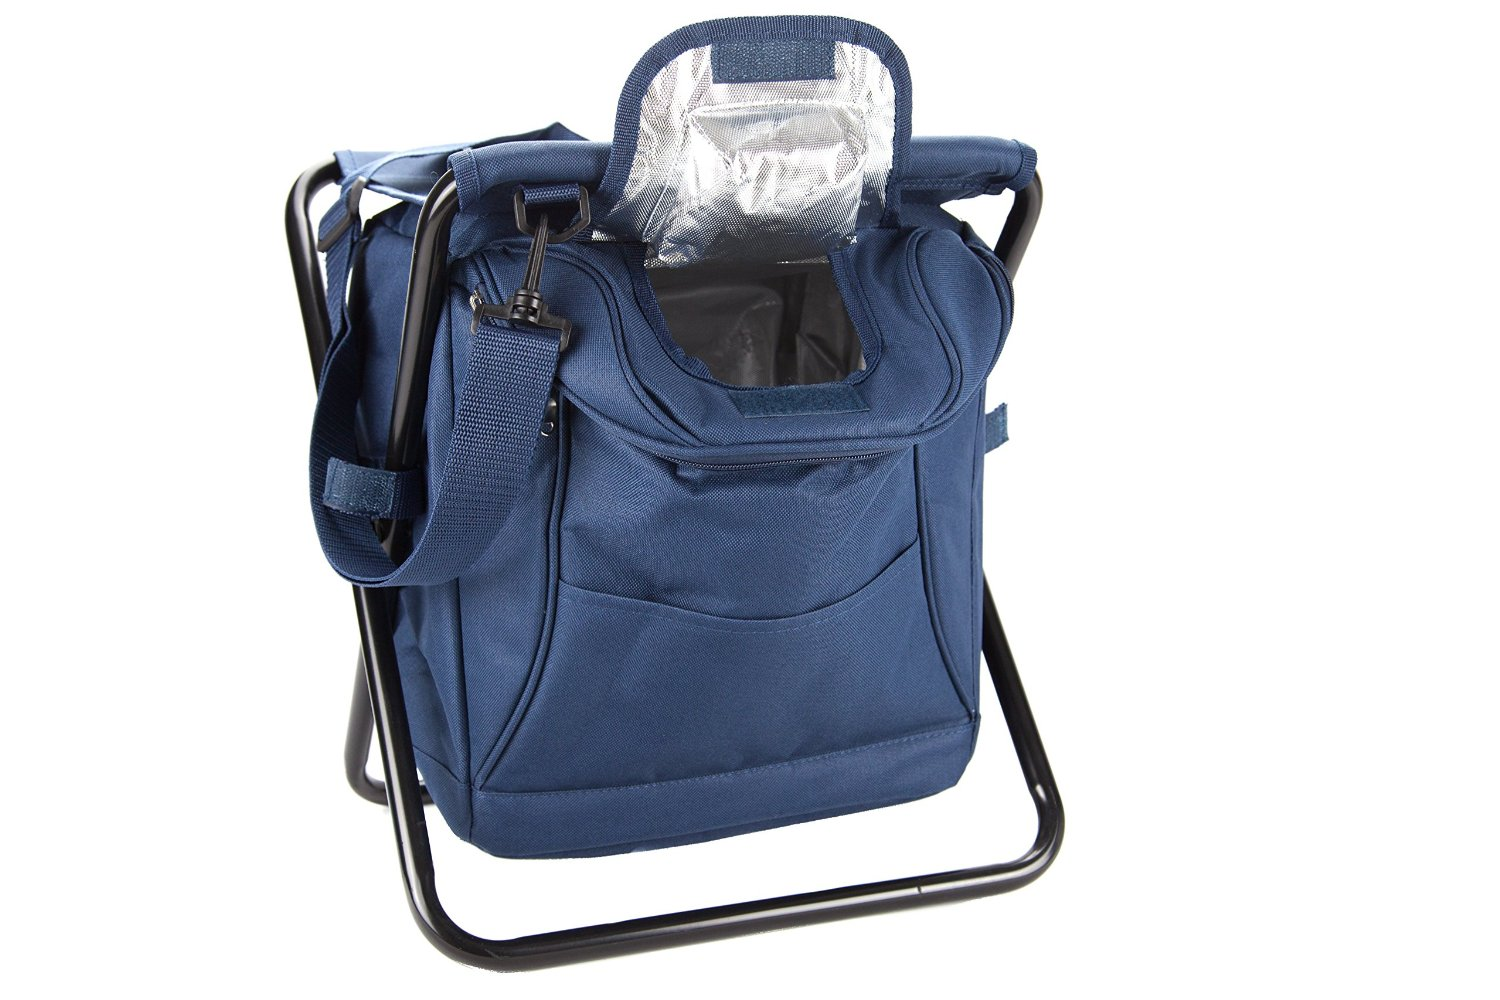 Backpack cooler chair - 3 In 1 Backpack Cooler Chair Insulated Cooler Stool Collapsible Walmart Com